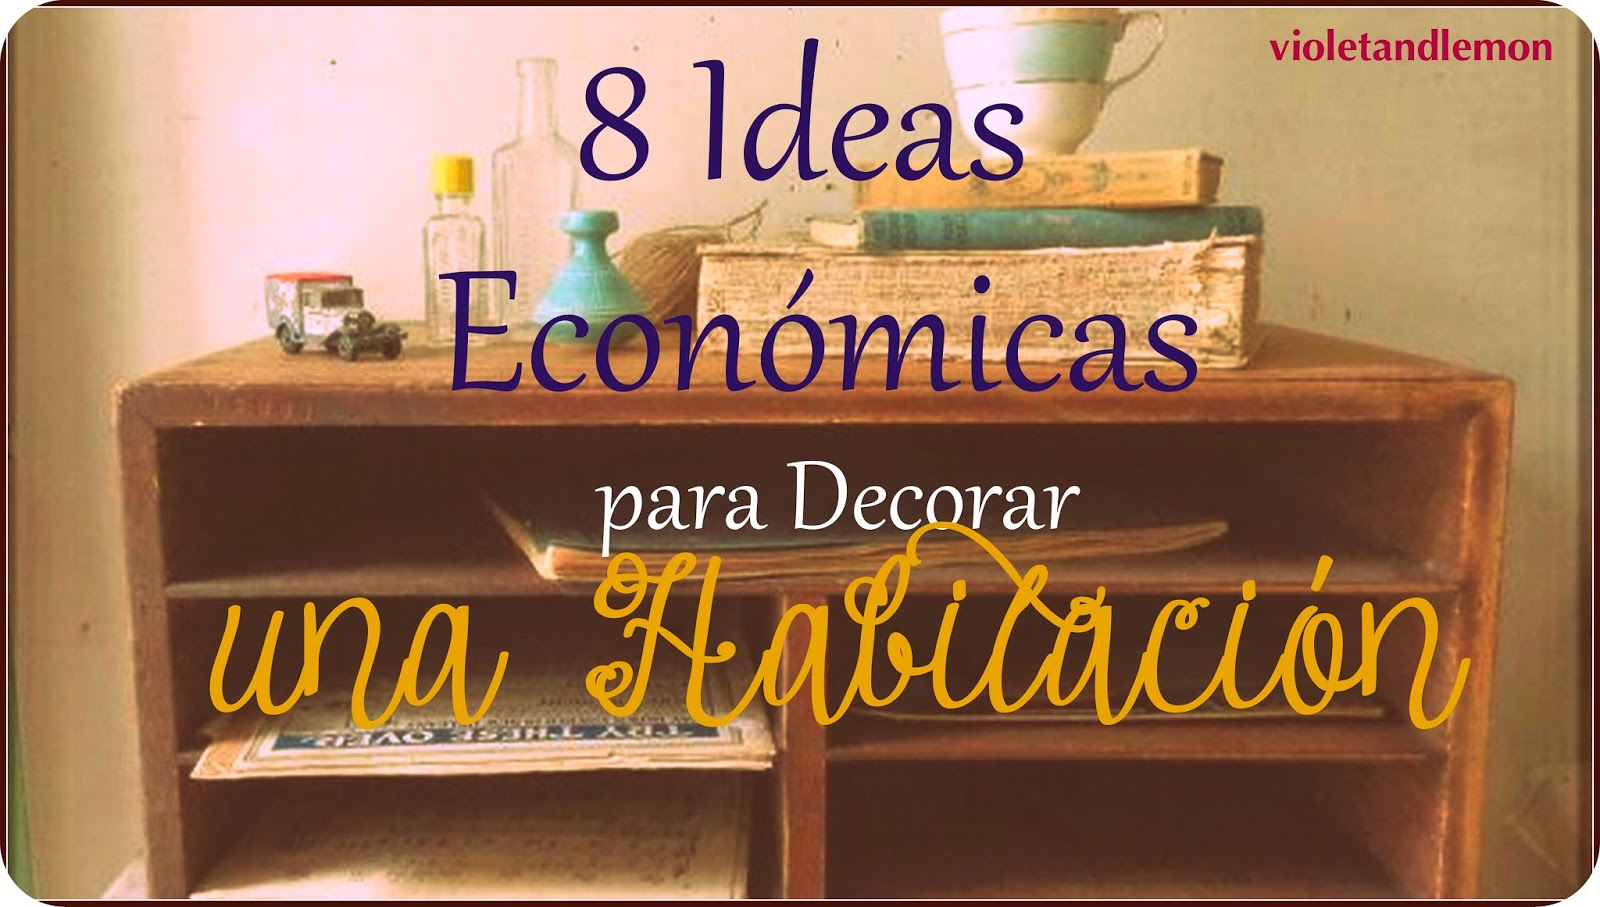 Collage De Fotos Para Dormitorios Violeta Y Limón 8 Ideas Económicas Para Decorar Una Habitación